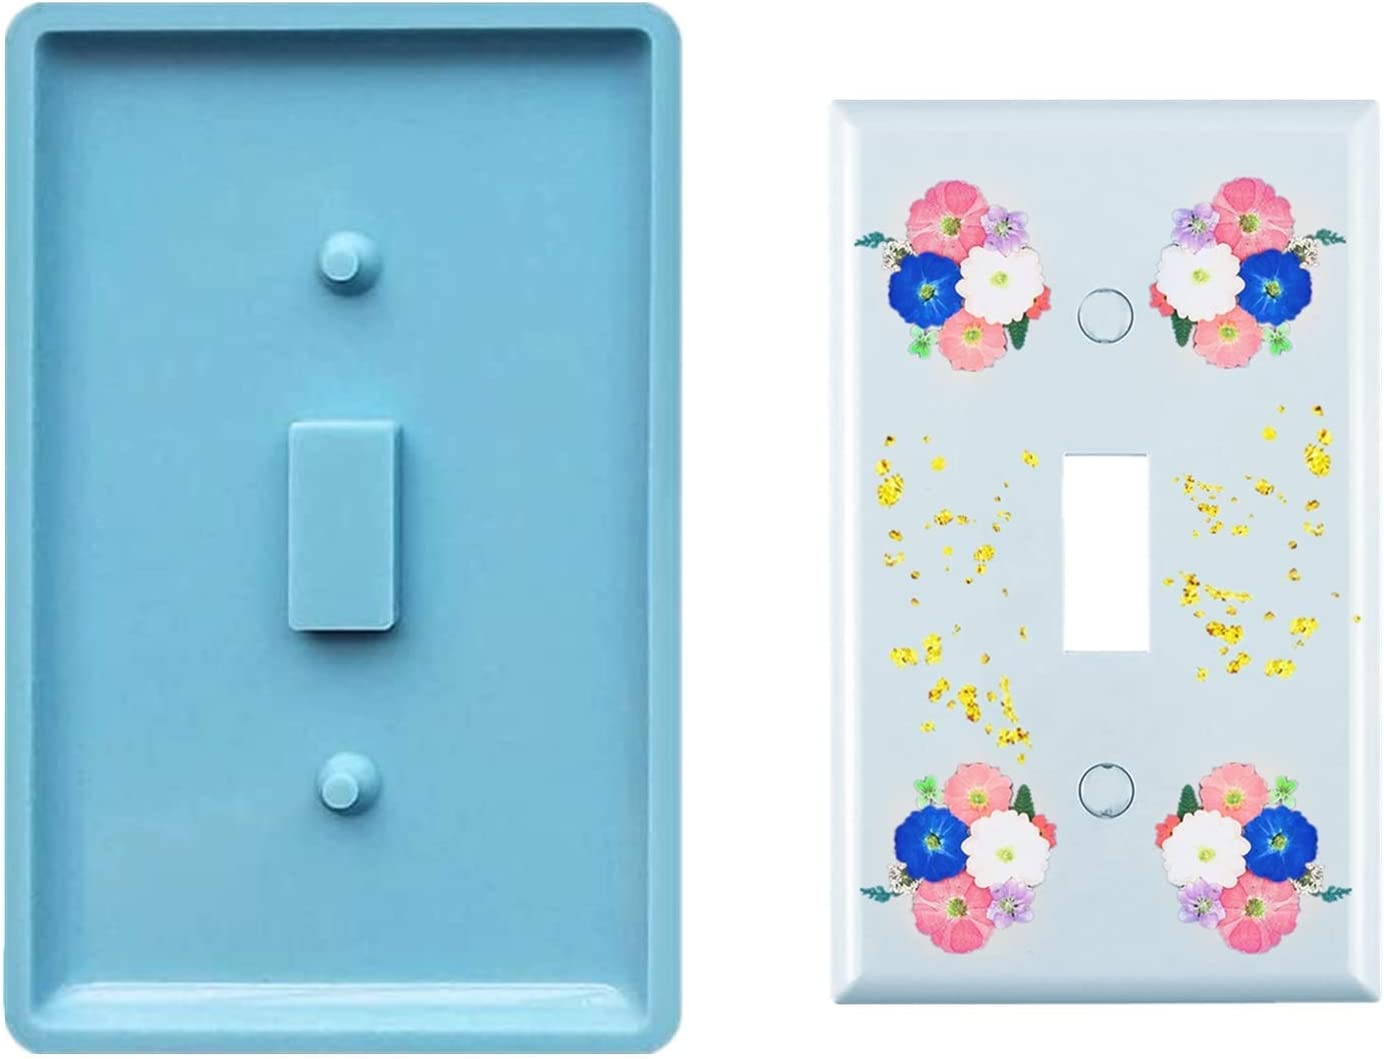 2PCS Switch Covers Mold Wall Plates for Outlets Home Decor Resin Crafts Art Supplies Cashger Switch Panel Resin Silicone Molds